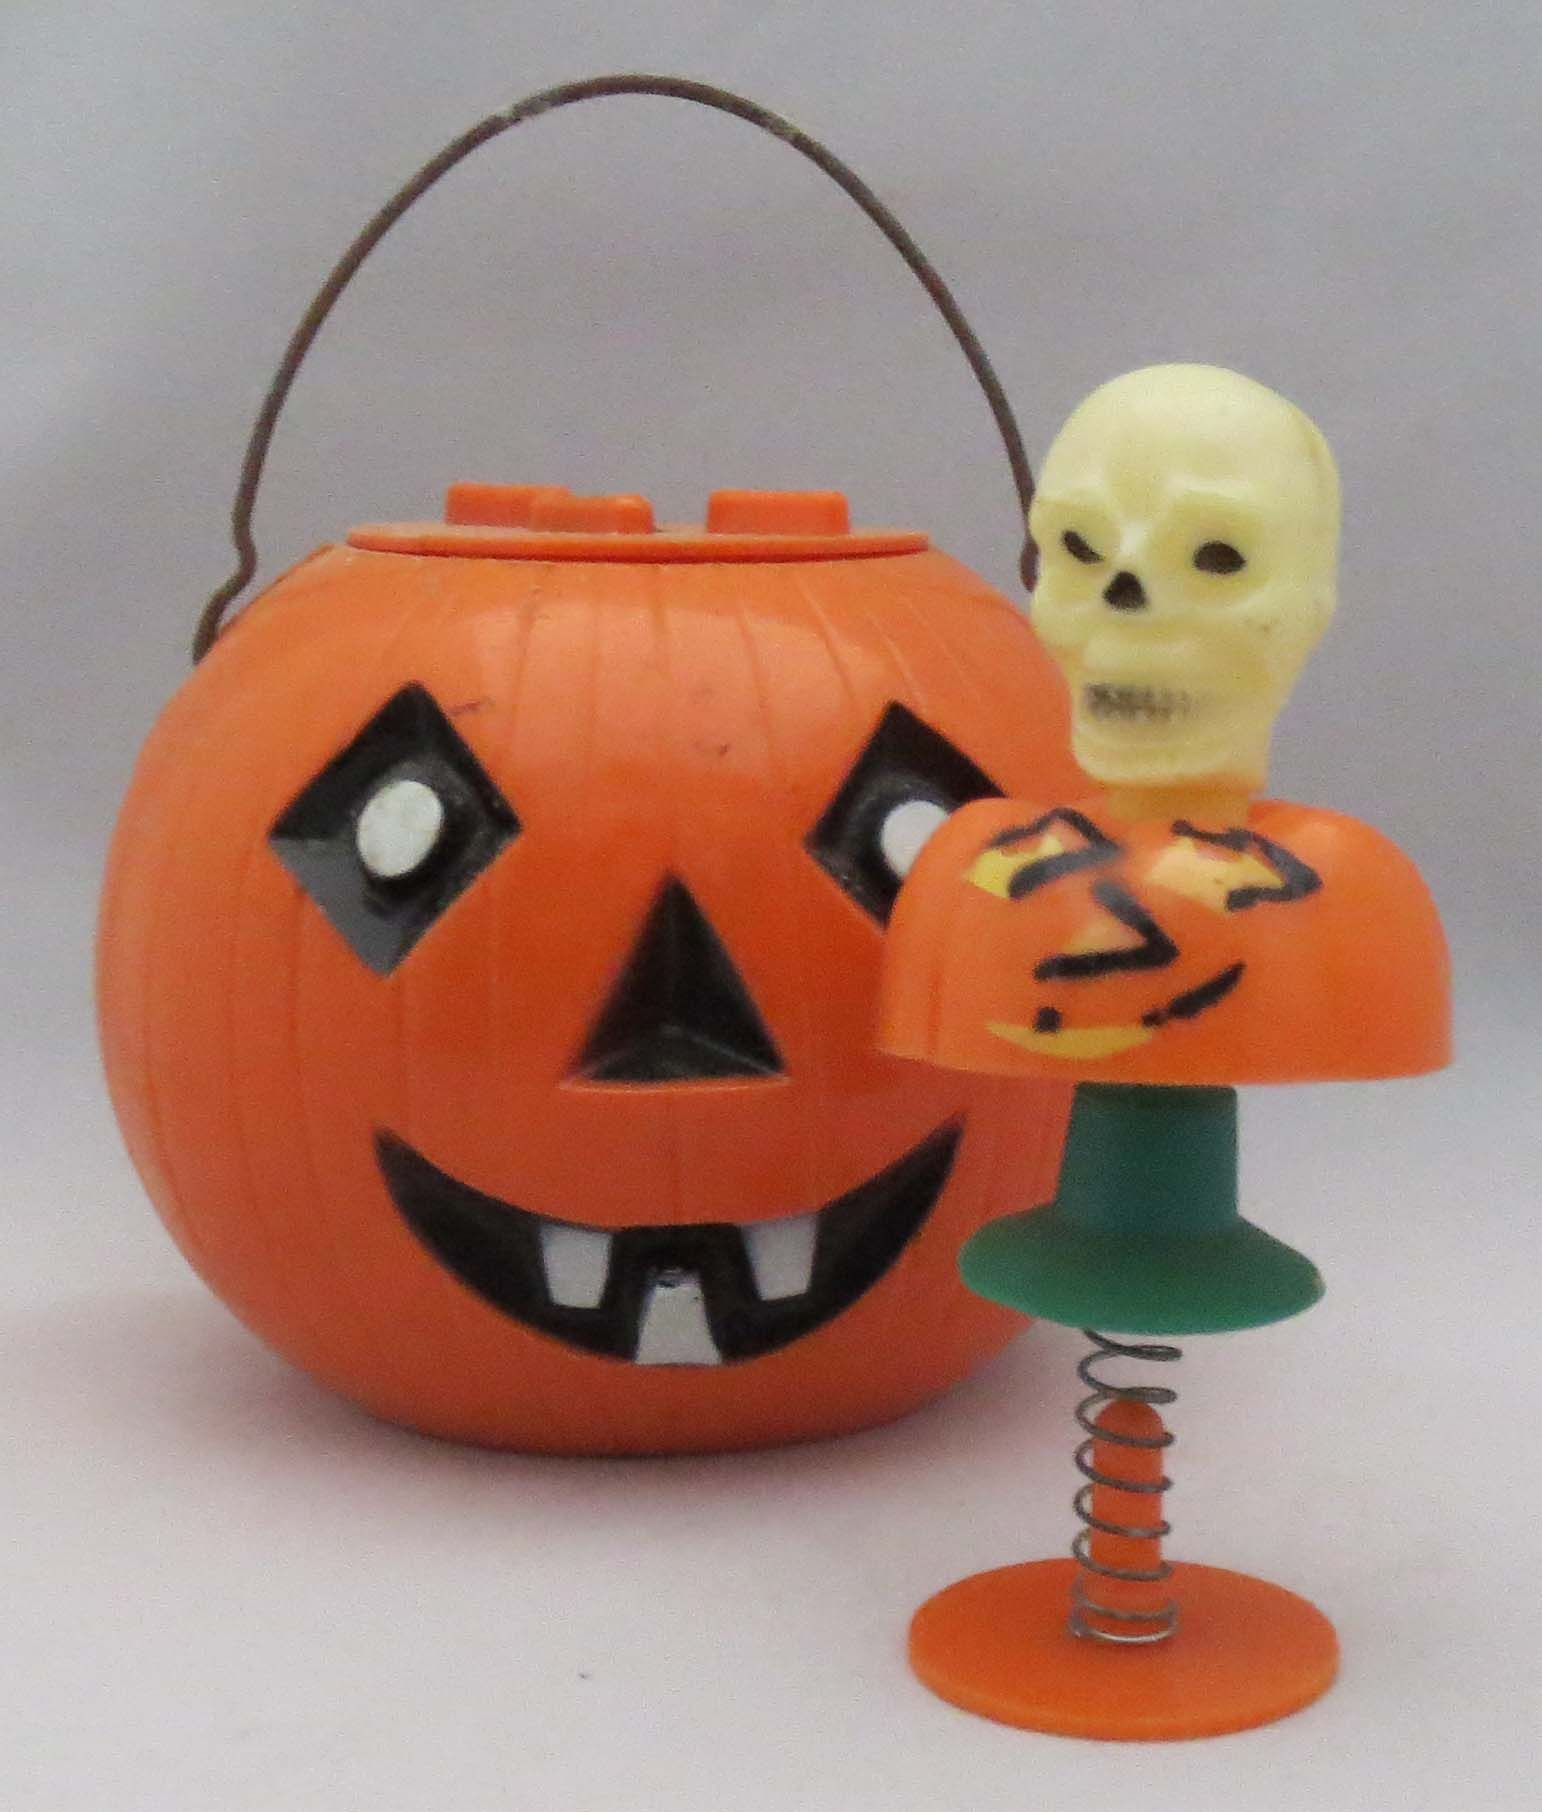 Hard plastic JOL lantern and skull suction cup pop-up.